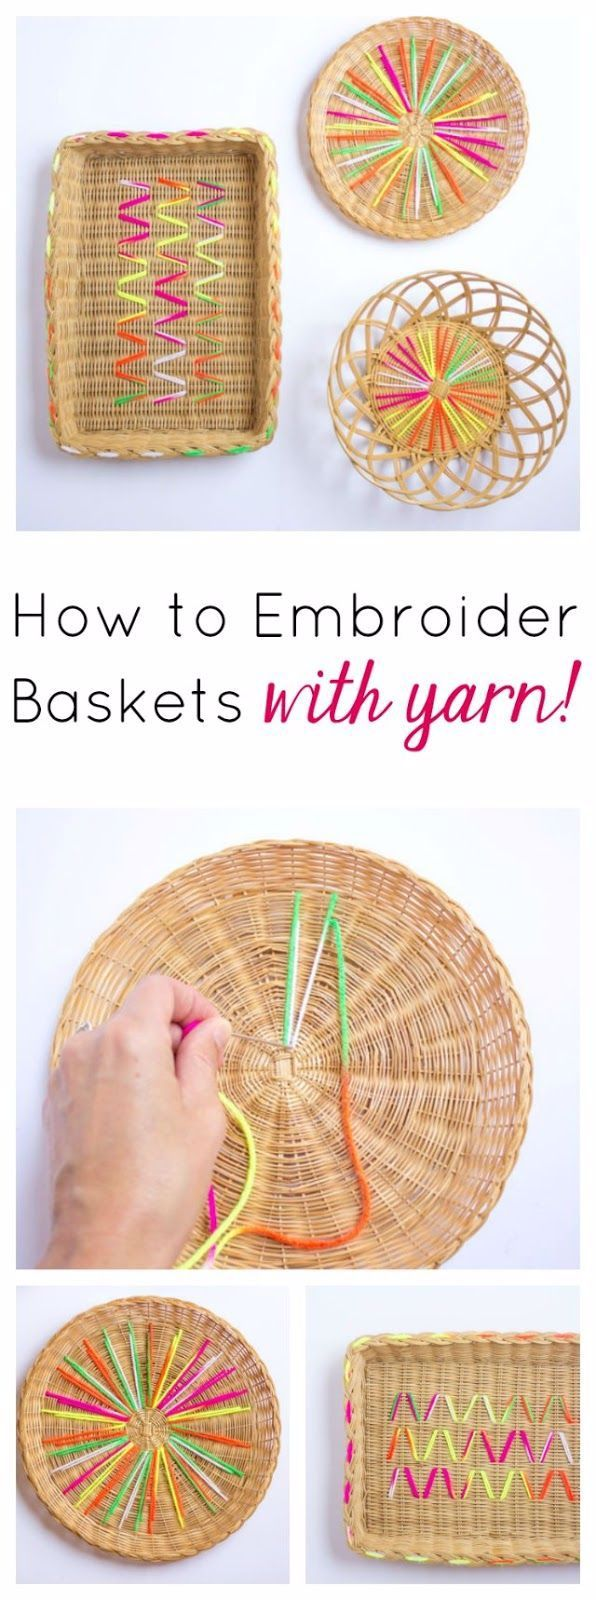 How to Embroider Baskets with Yarn!